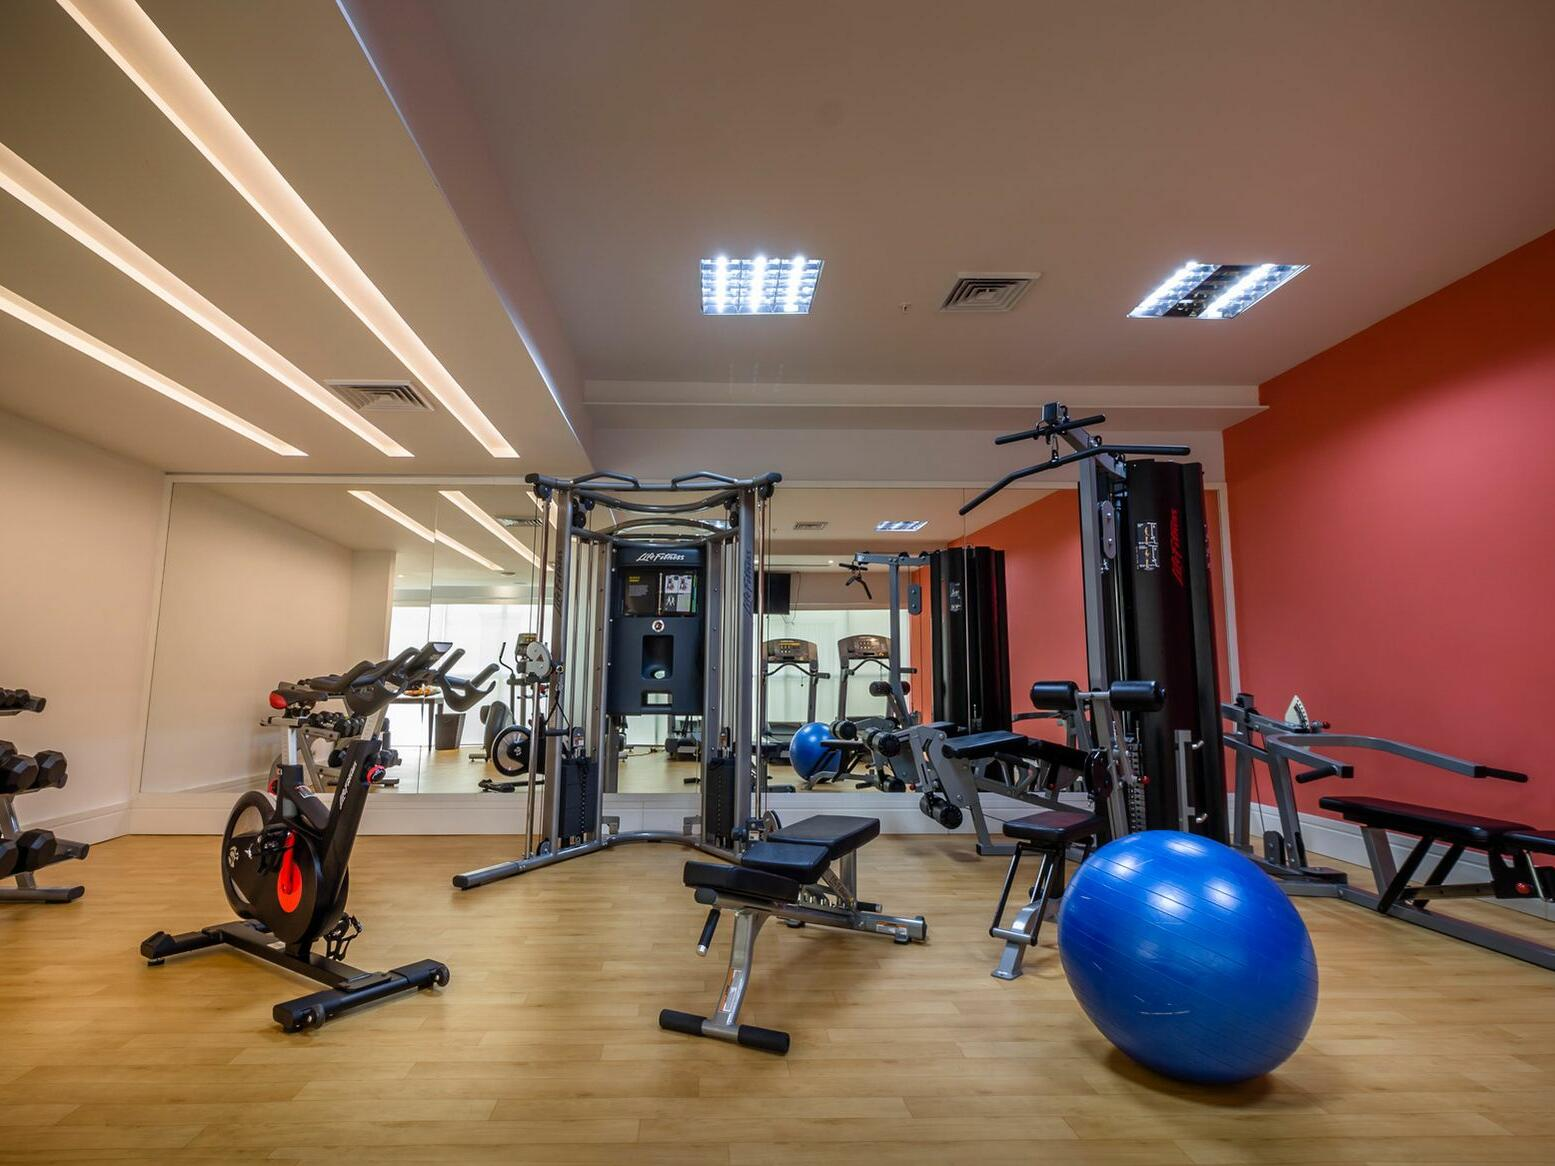 Fitness Center and the Gym at Central Hotel Panama